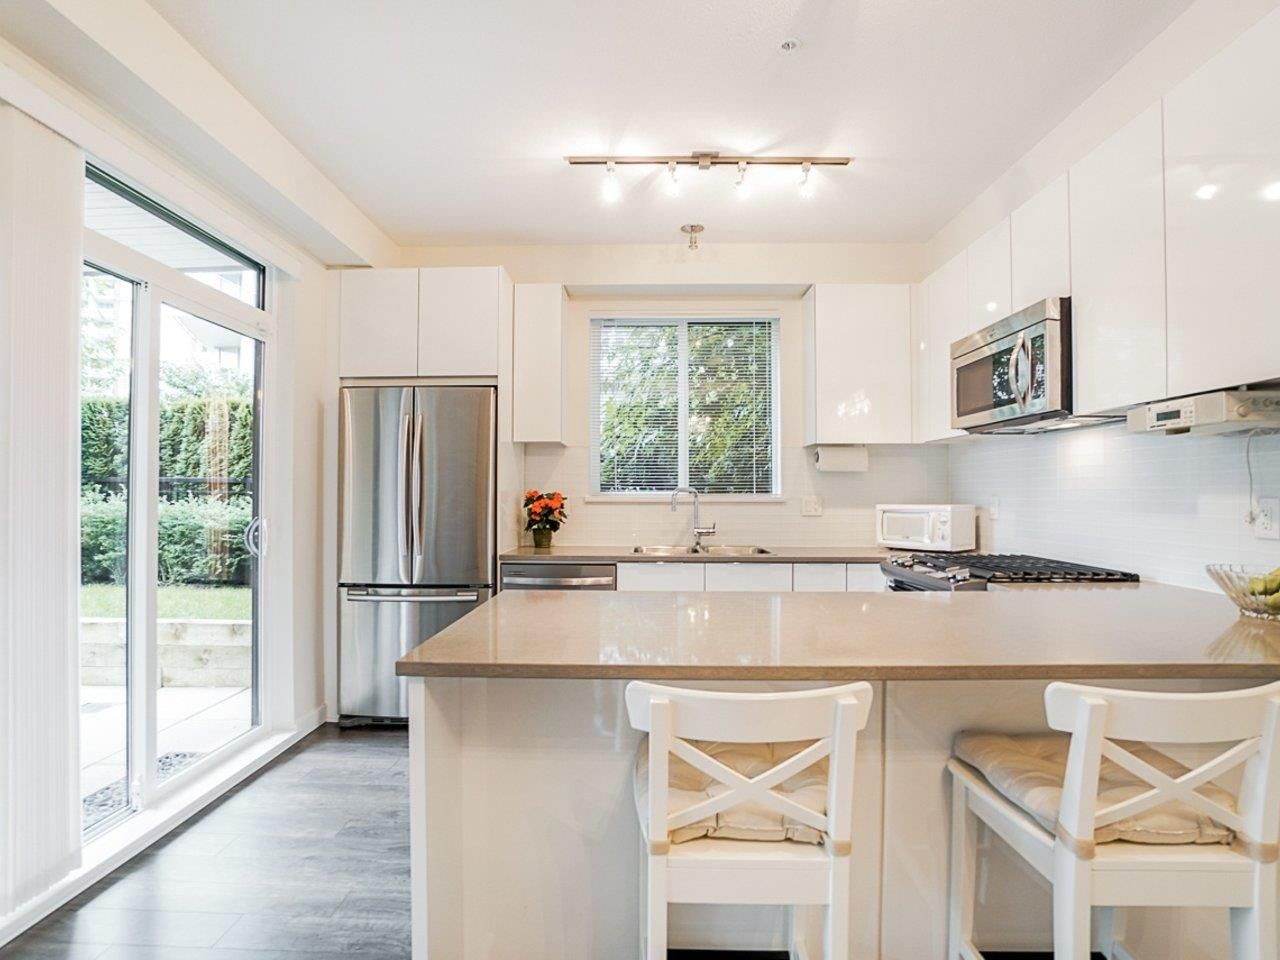 Photo 18: Photos: 108 1151 WINDSOR Mews in Coquitlam: New Horizons Condo for sale : MLS®# R2500299